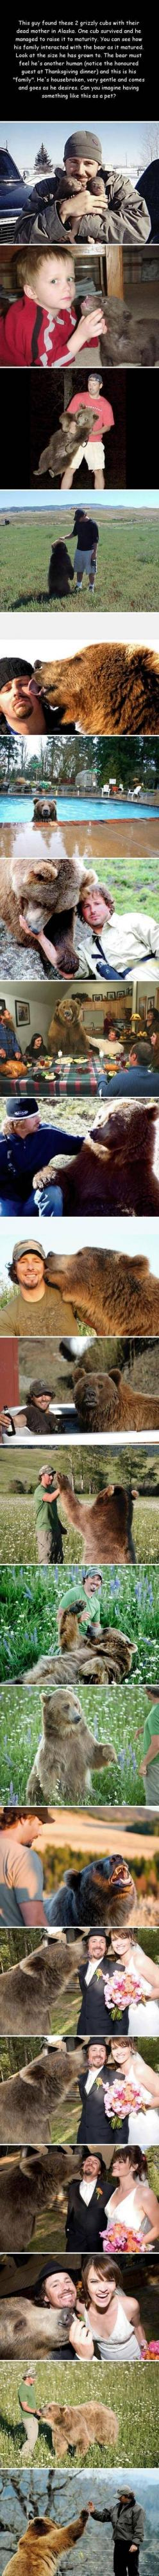 Amazing: Humanity Restored, Adorable Animals, Wild Animals, Pet Bear, Bear Cubs, Grizzly Bears